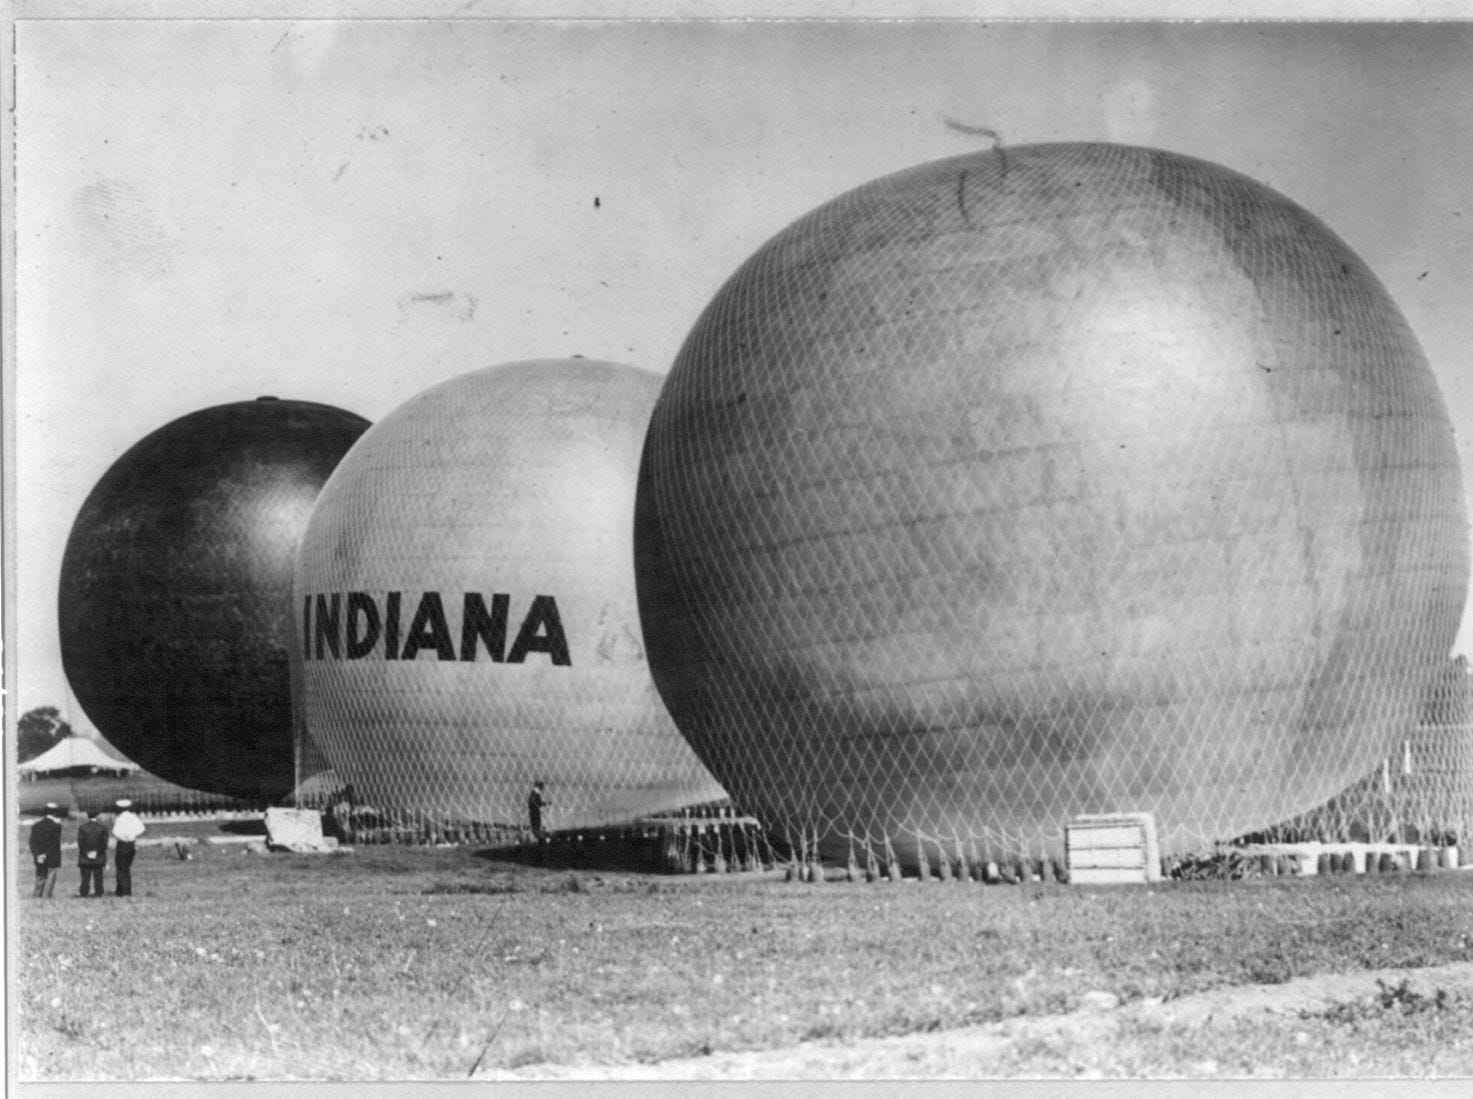 Balloons: Chicago, Indiana, and Hoosier netted down to ground prior to the  National Balloon Race in 1909 starting at the Indianapolis Motor Speedway.